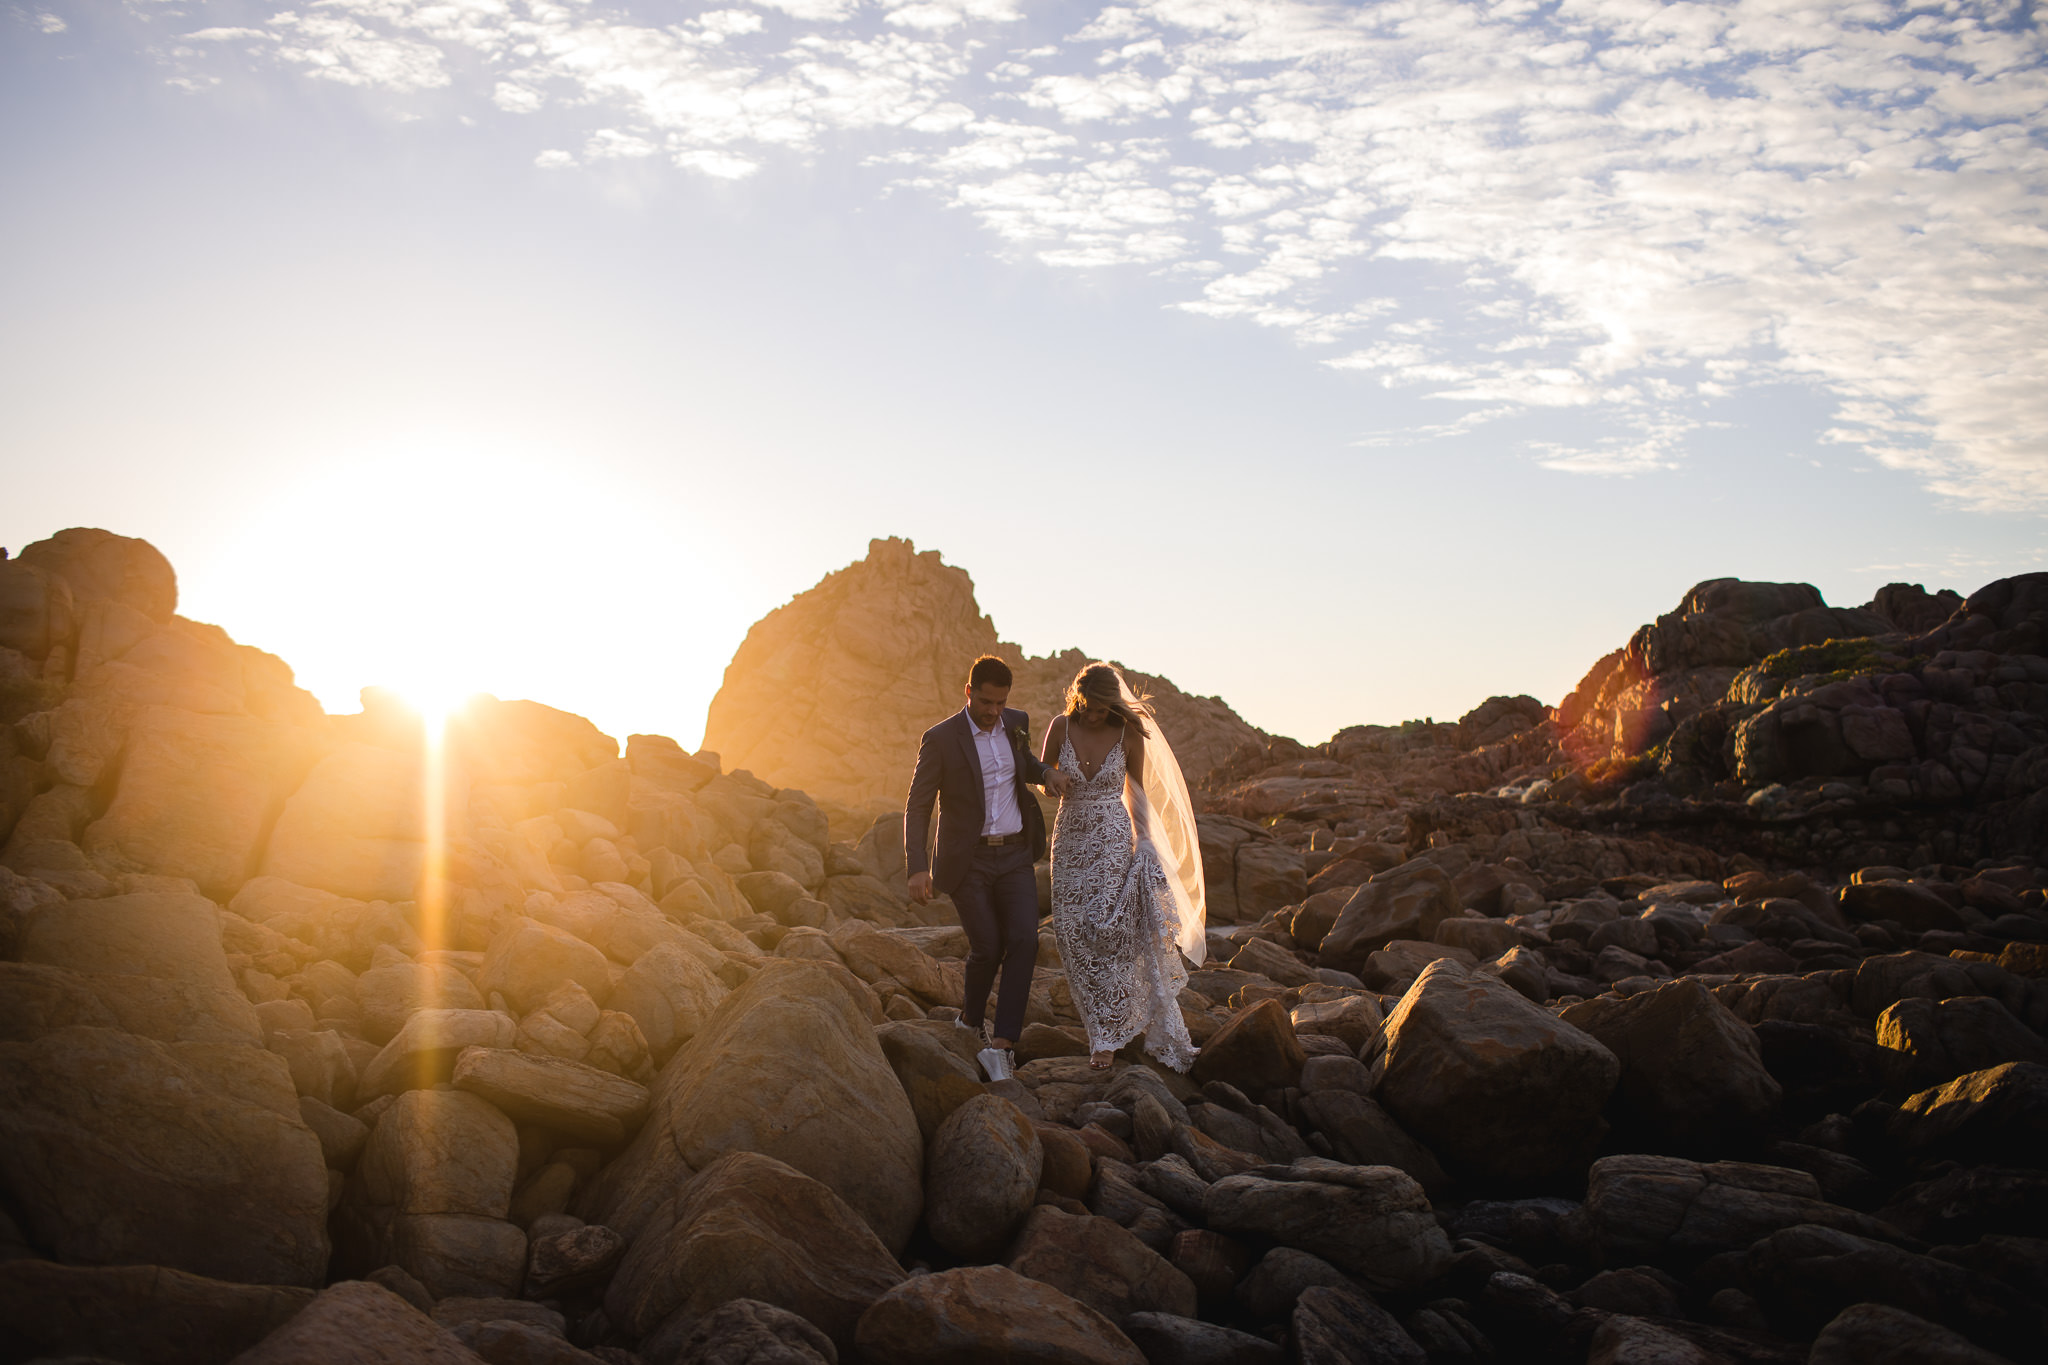 Groom wearing white sneakers with his grey suit and bride in Made by Love wedding dress walking along rocks landscape at sunset